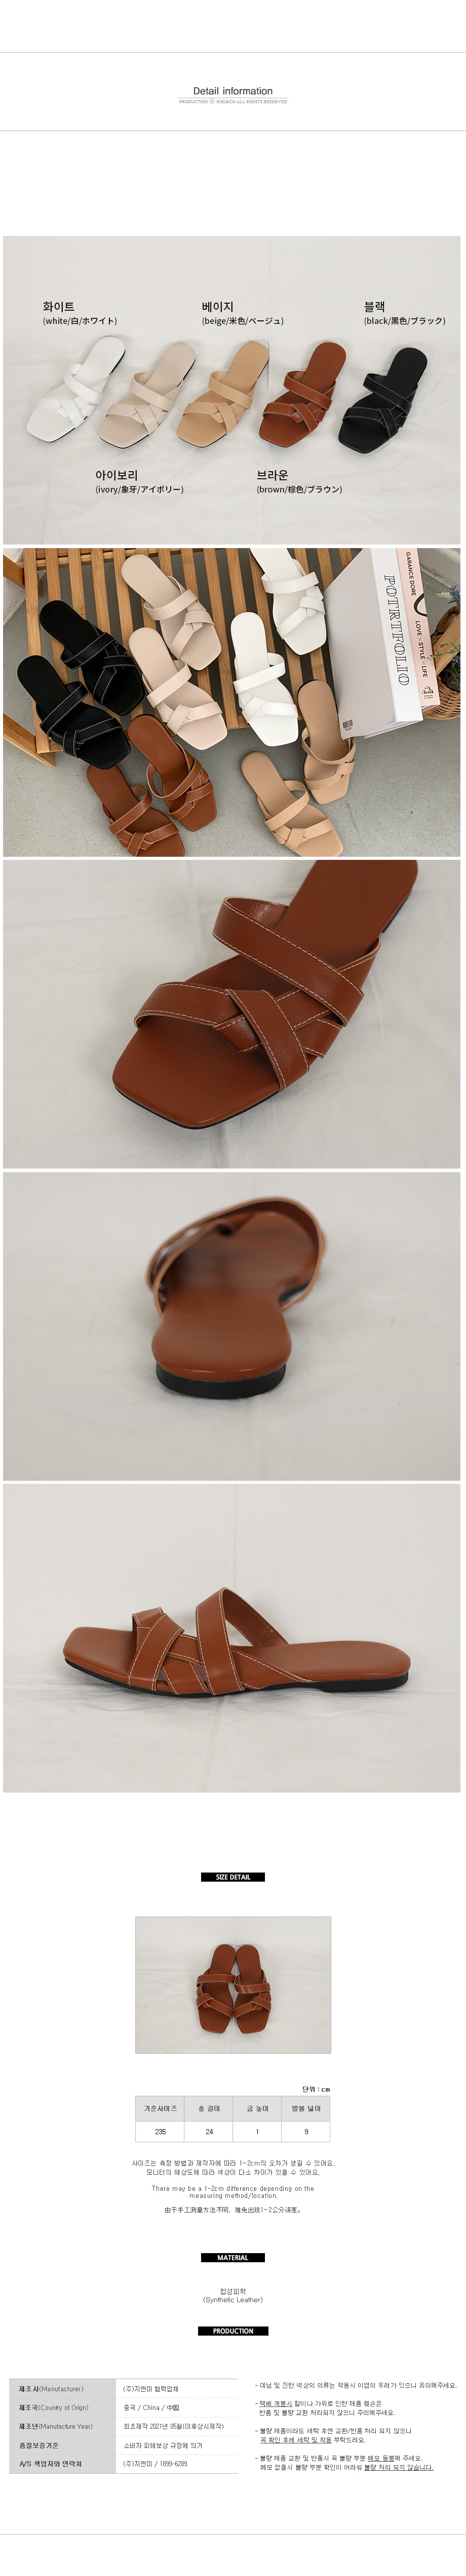 Stitched strap slippers